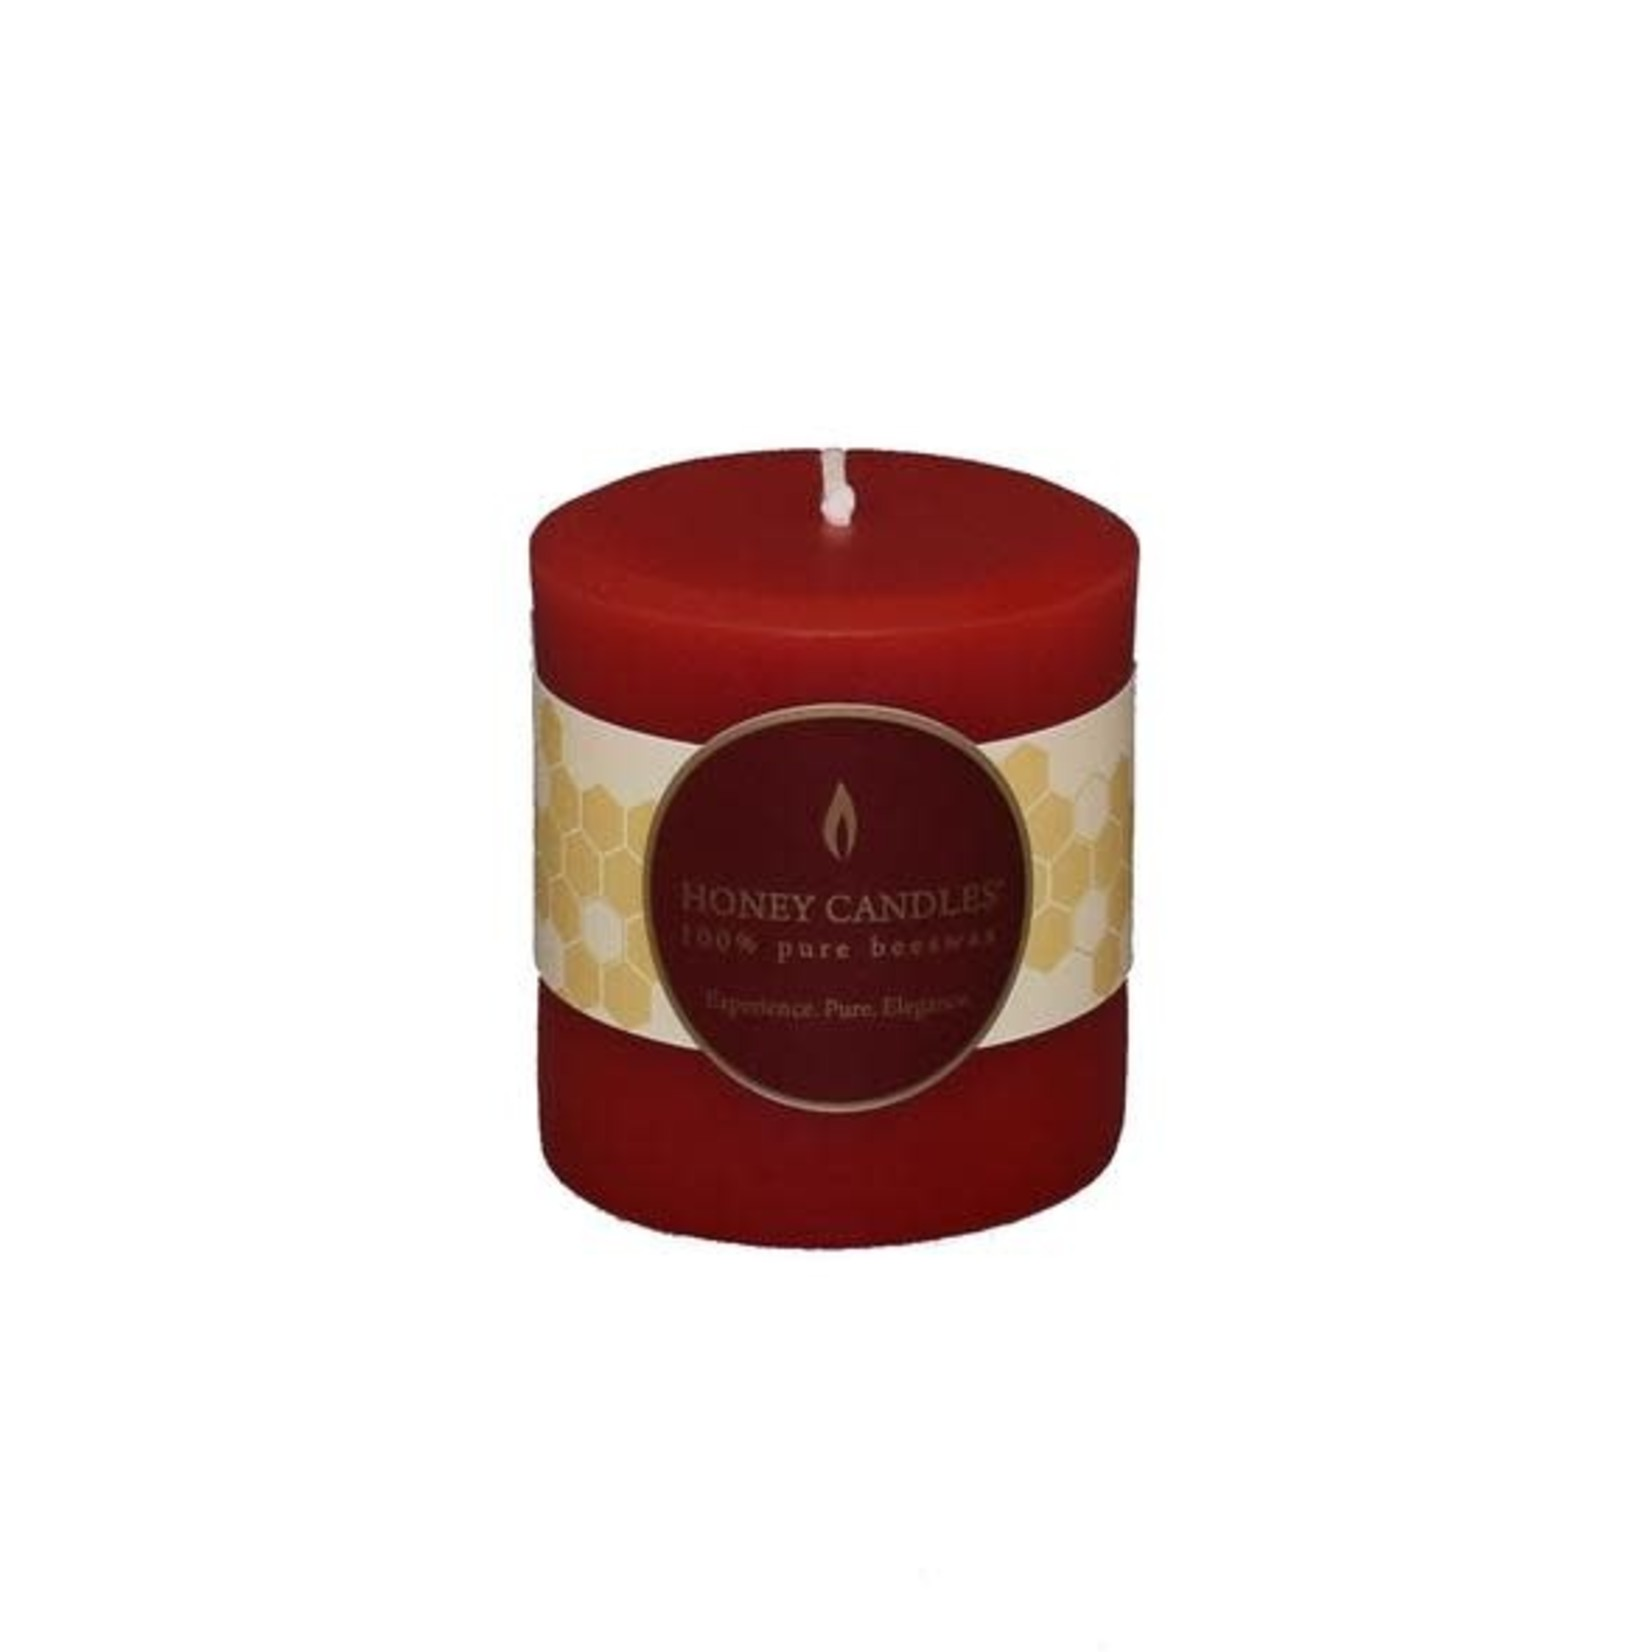 "HONEY CANDLES Red 3"" Round Beeswax Pillar"